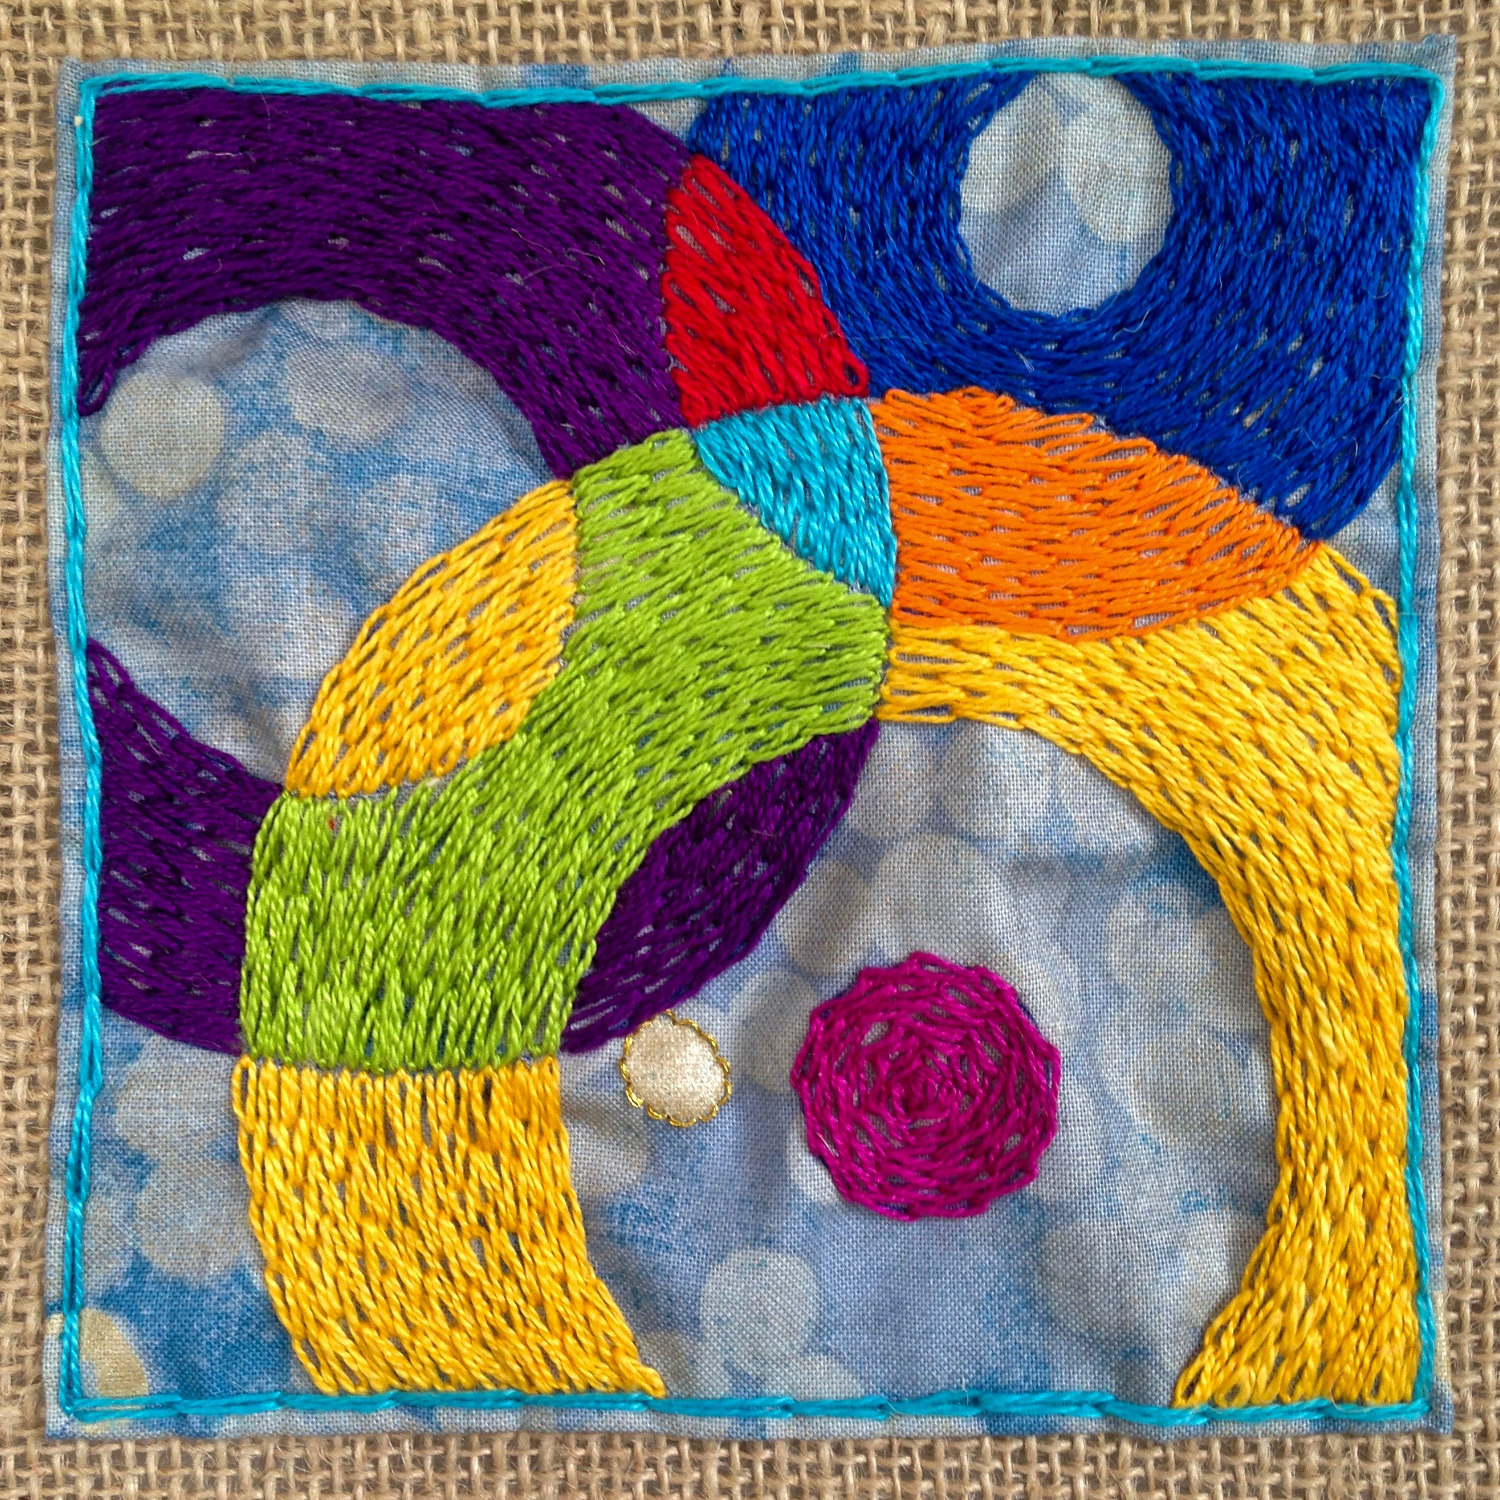 Genetic predisposition? My   Made on Monday   #23, made several weeks before I found my mother's needlepoint.